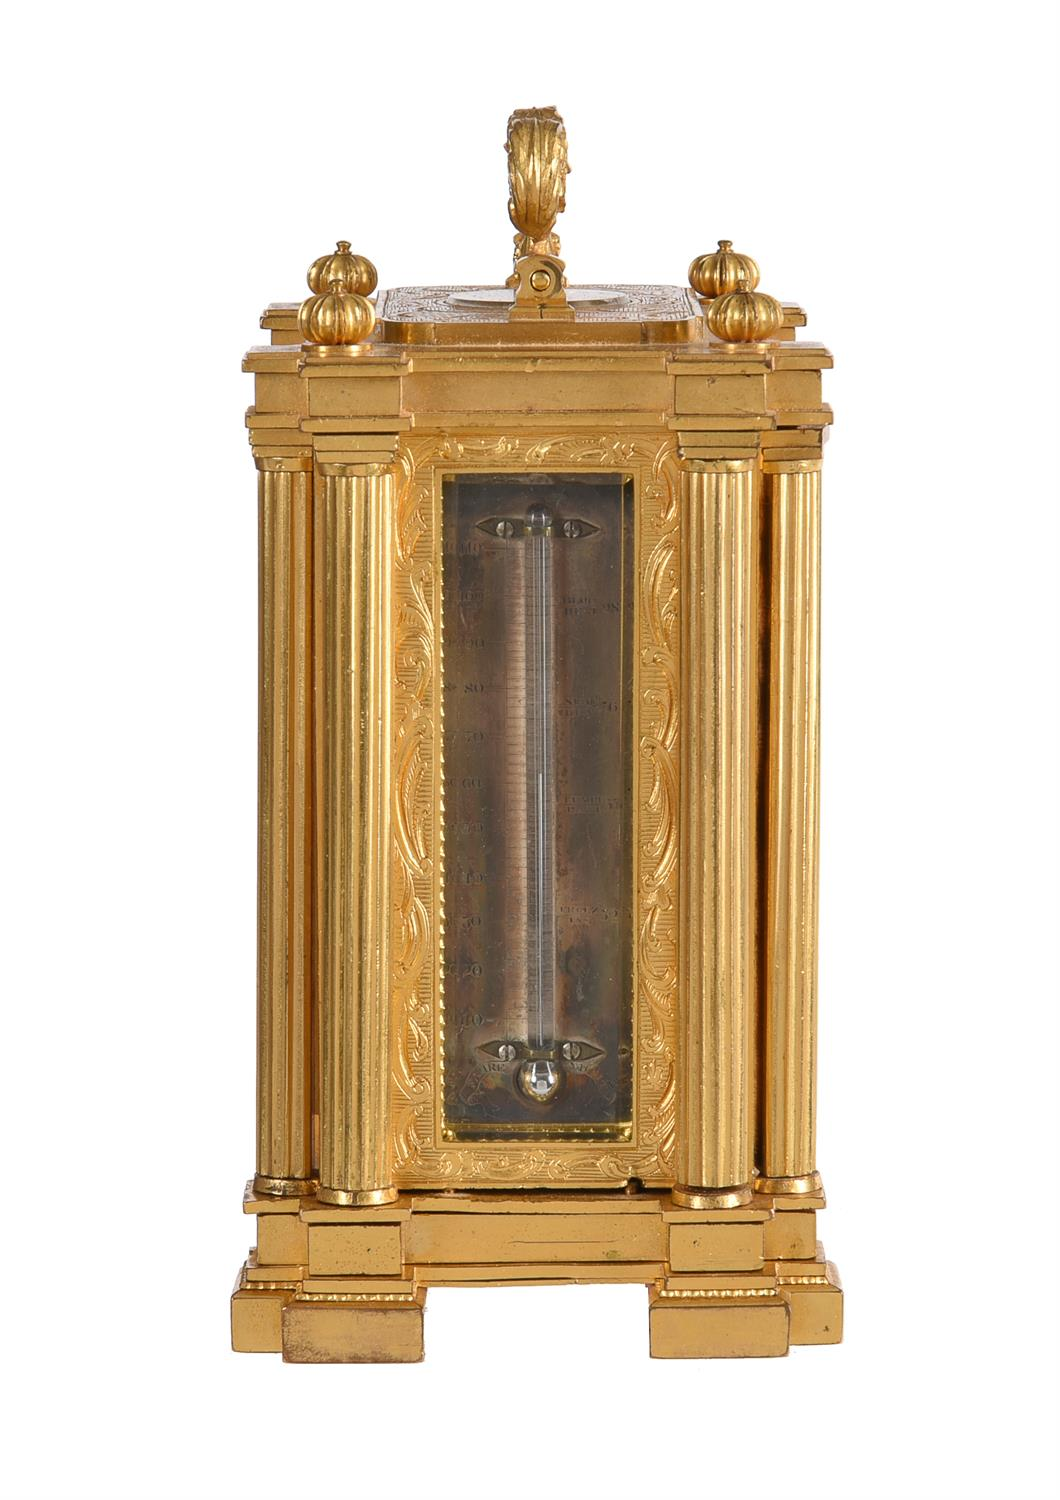 A fine small early Victorian engraved gilt brass small calendar carriage timepiece with twin thermom - Image 4 of 14